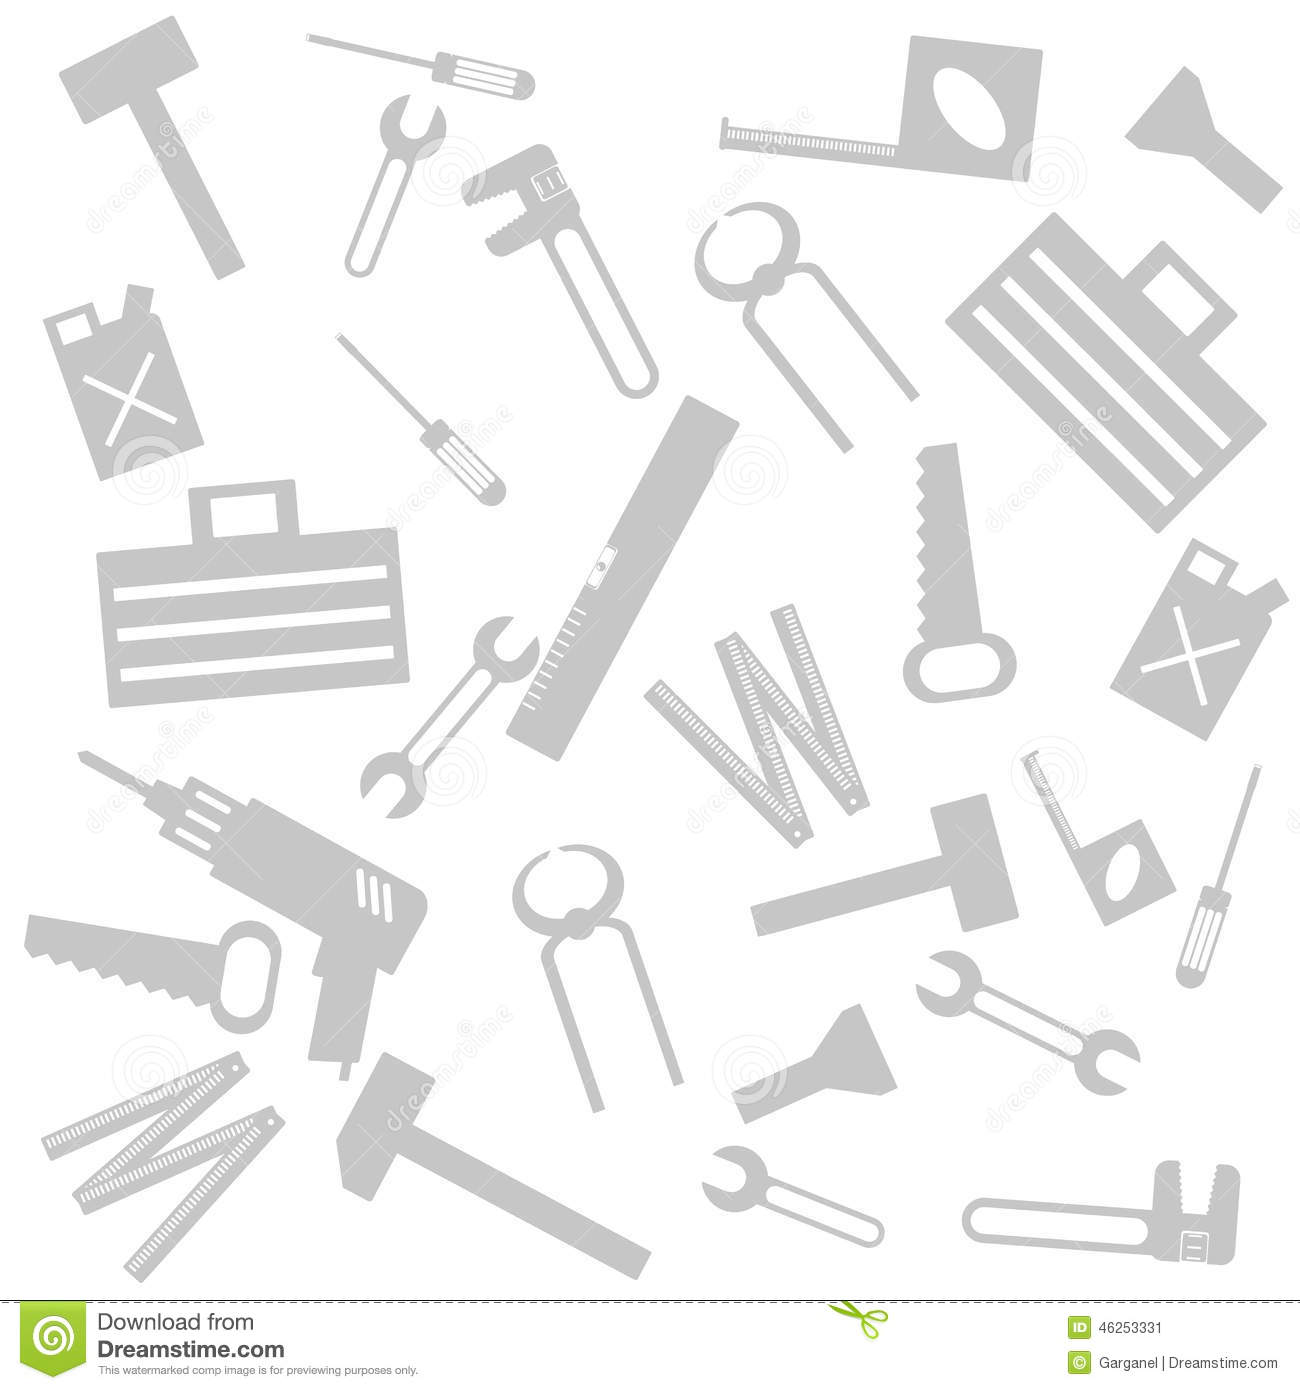 house remodel blogs with Stock Illustration Vector Repair Tools Background Gray Color Image46253331 on Paint Colors Front Door n 3294468 furthermore Stock Illustration Vector Repair Tools Background Gray Color Image46253331 in addition Young Architect Transforms A 1955 Grain Silo Into A Gorgeous Affordable Home For Two further Contemporary Laundry Rooms 501351339 as well .